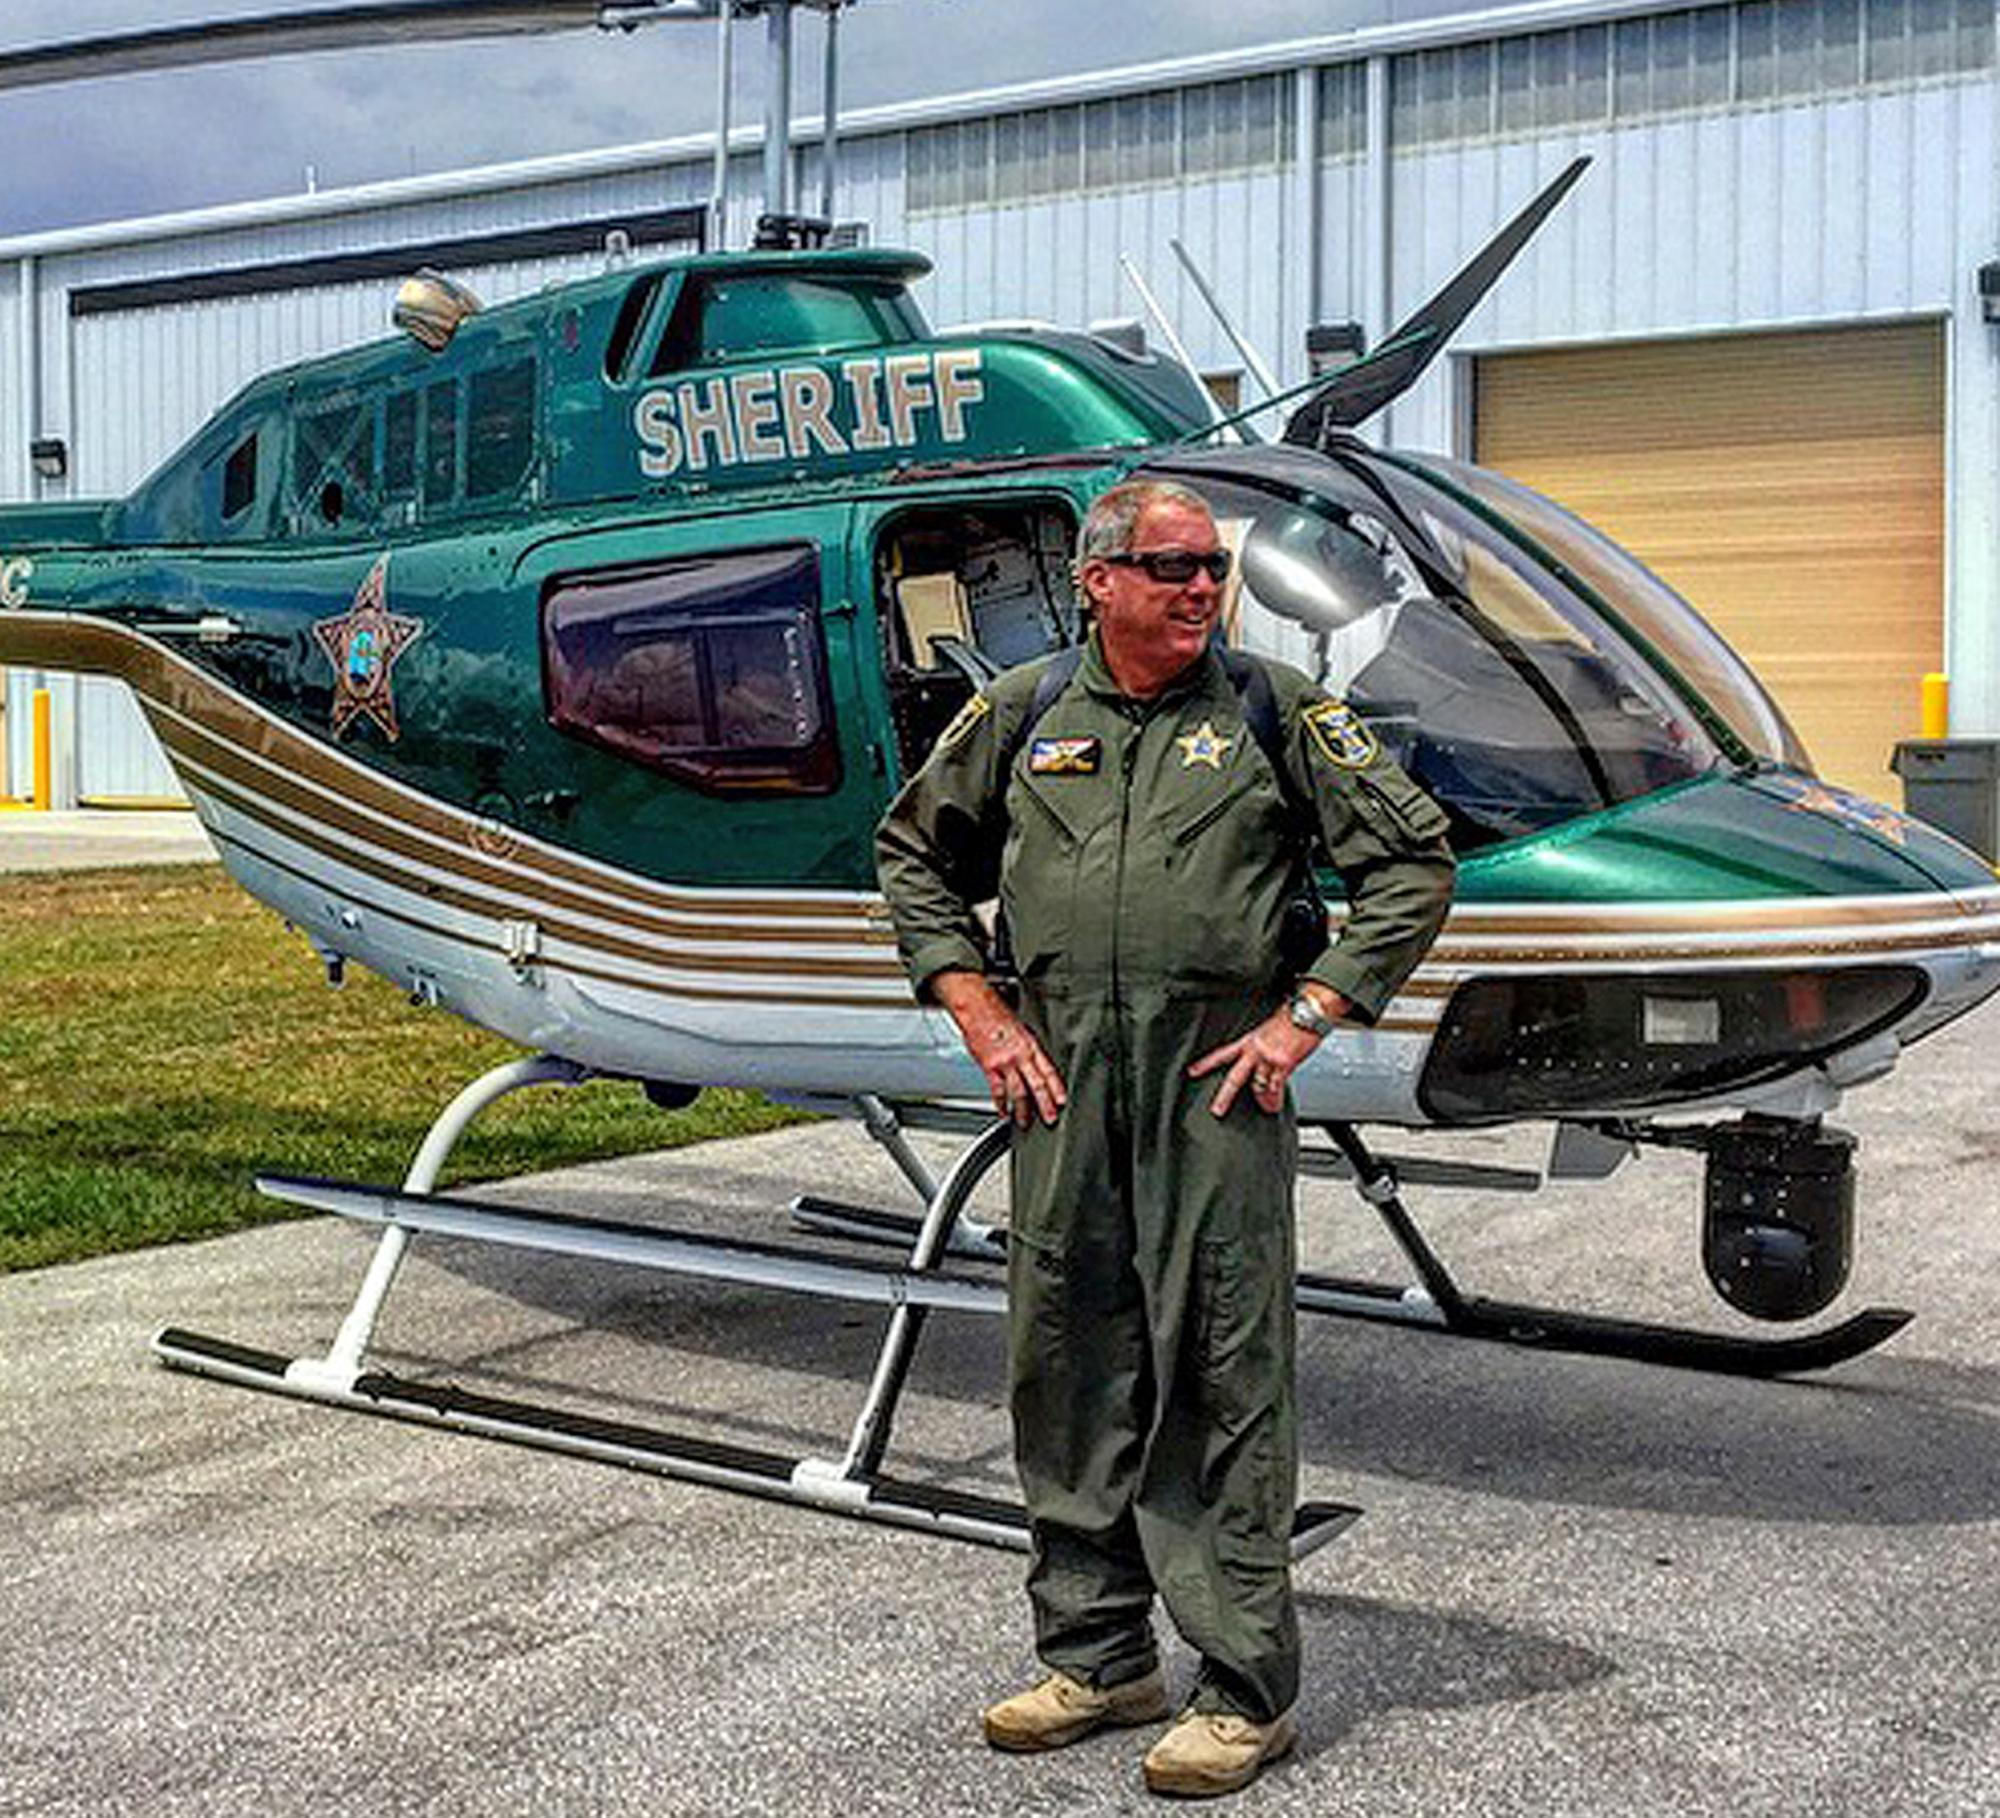 Martin County Sheriff's Office helicopter